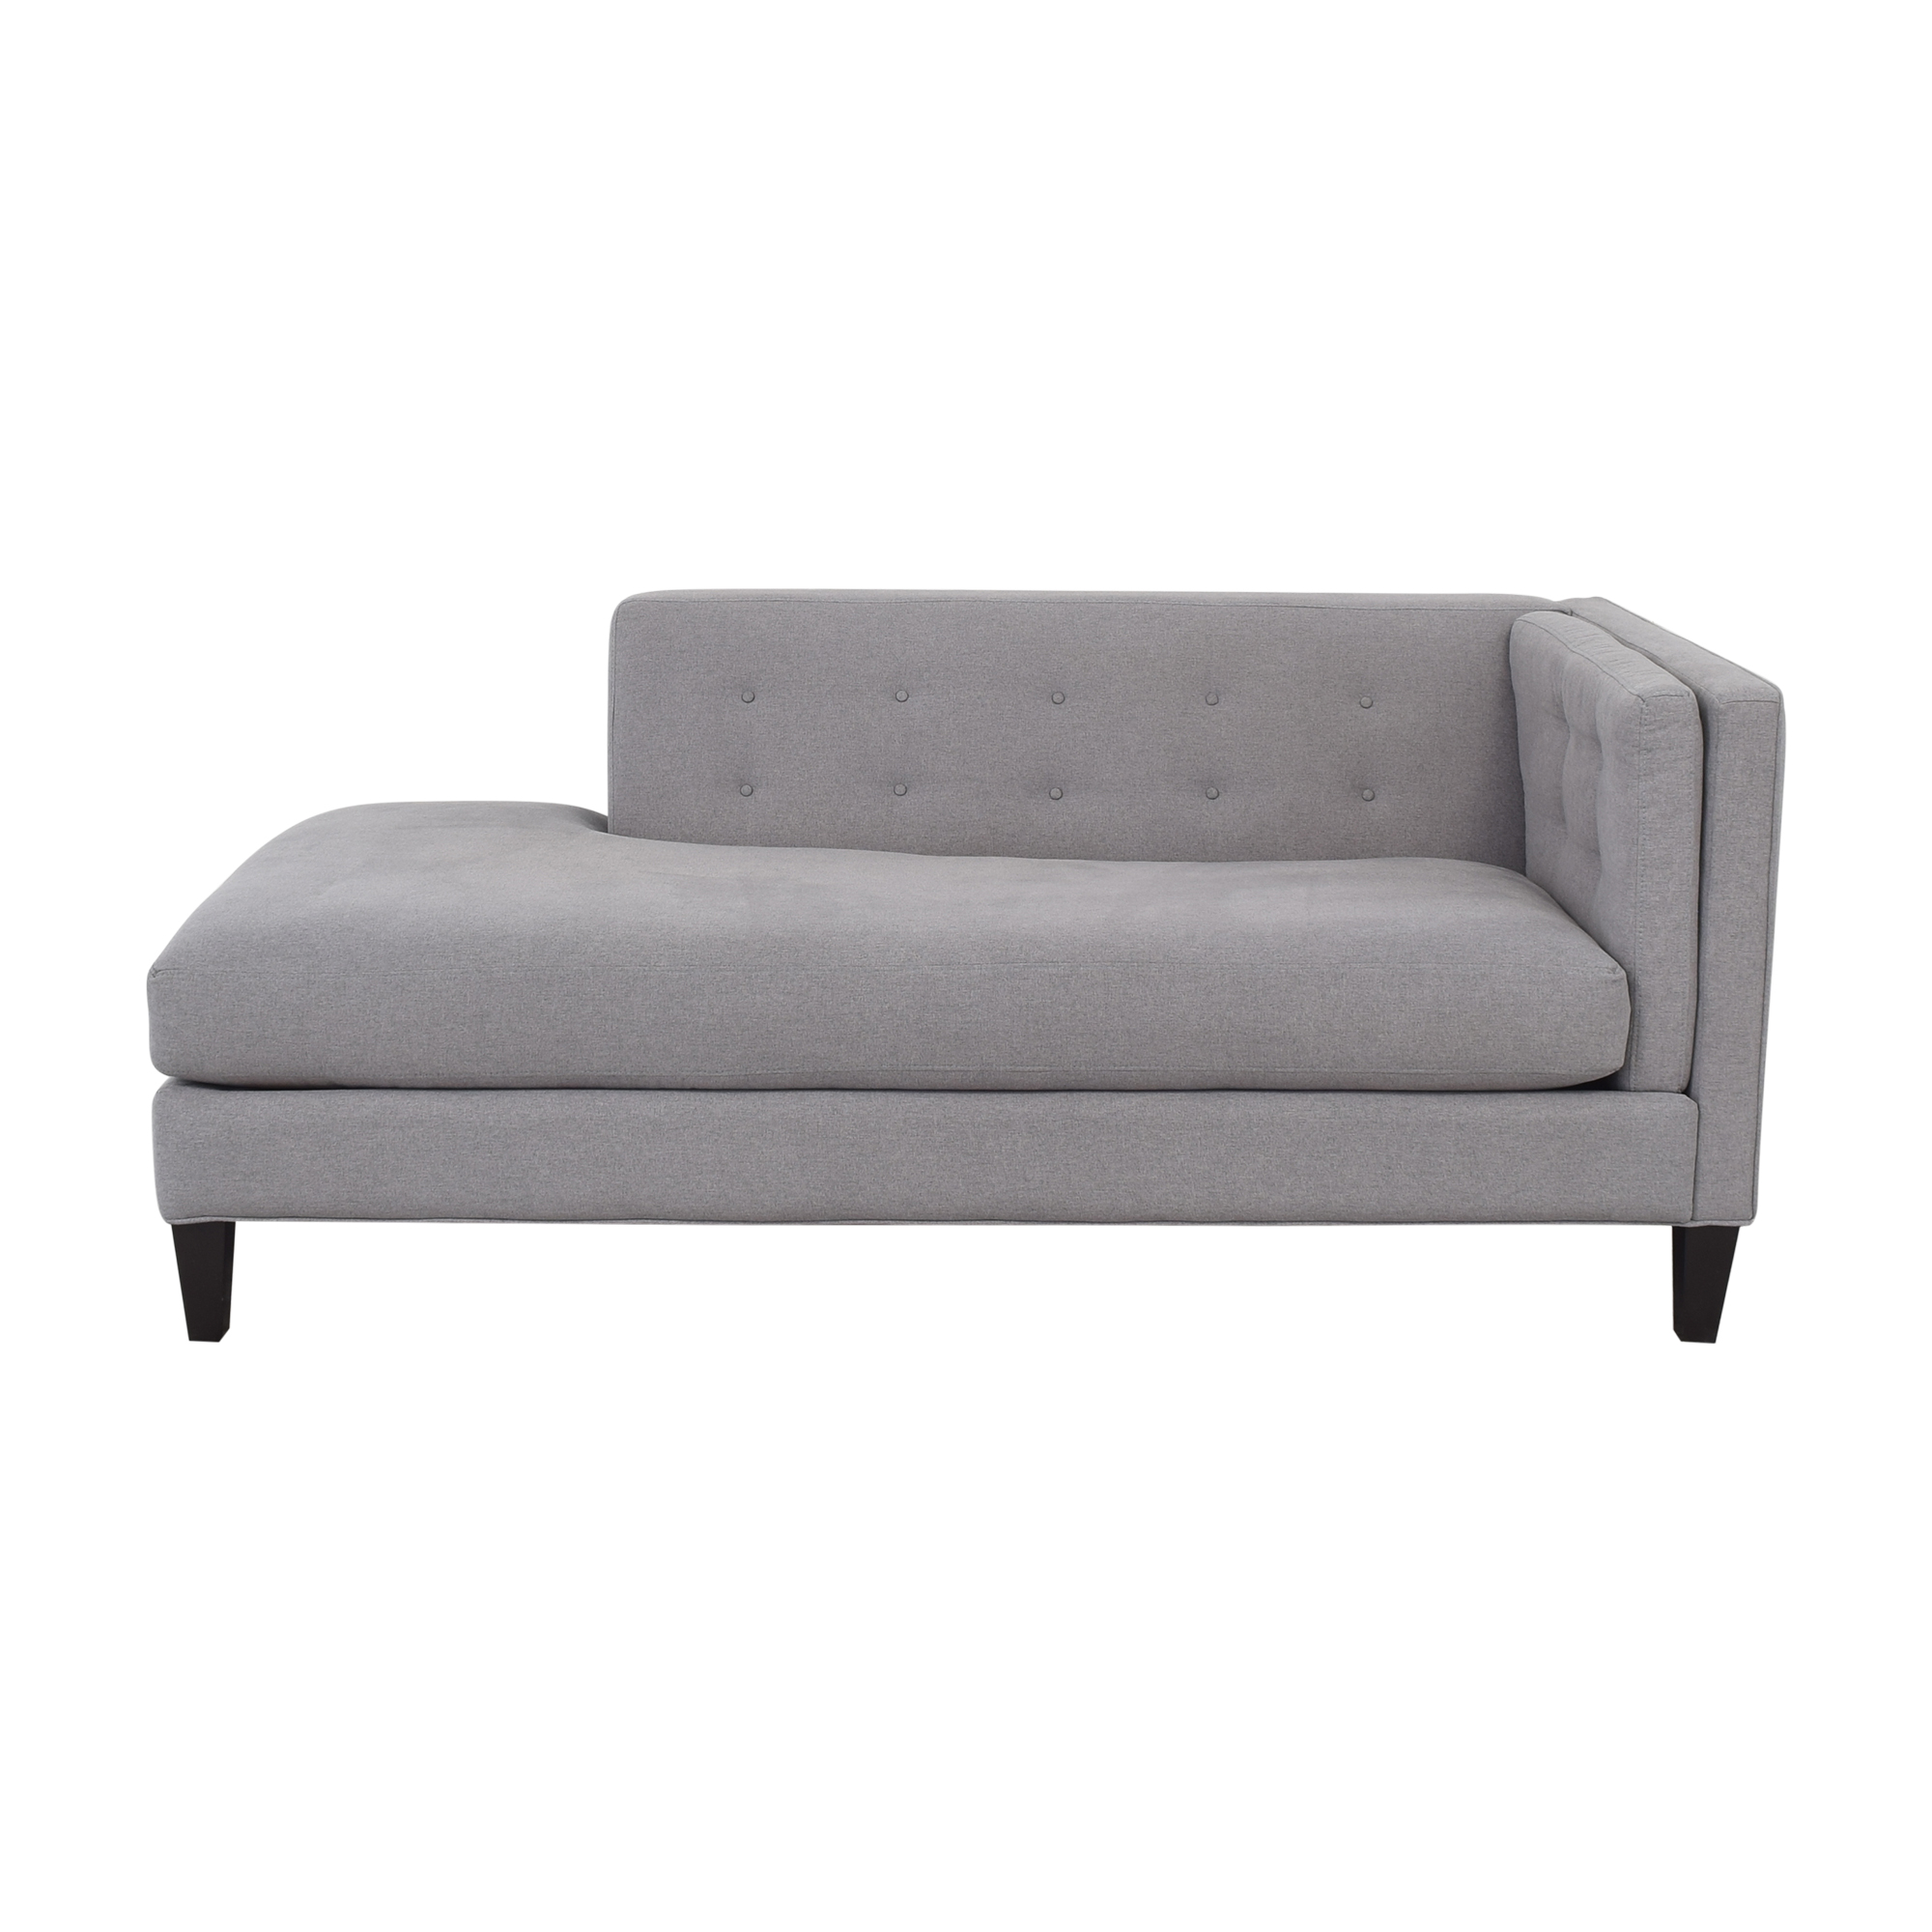 shop Macy's Macy's Braylei Fabric Chaise with Ottoman online